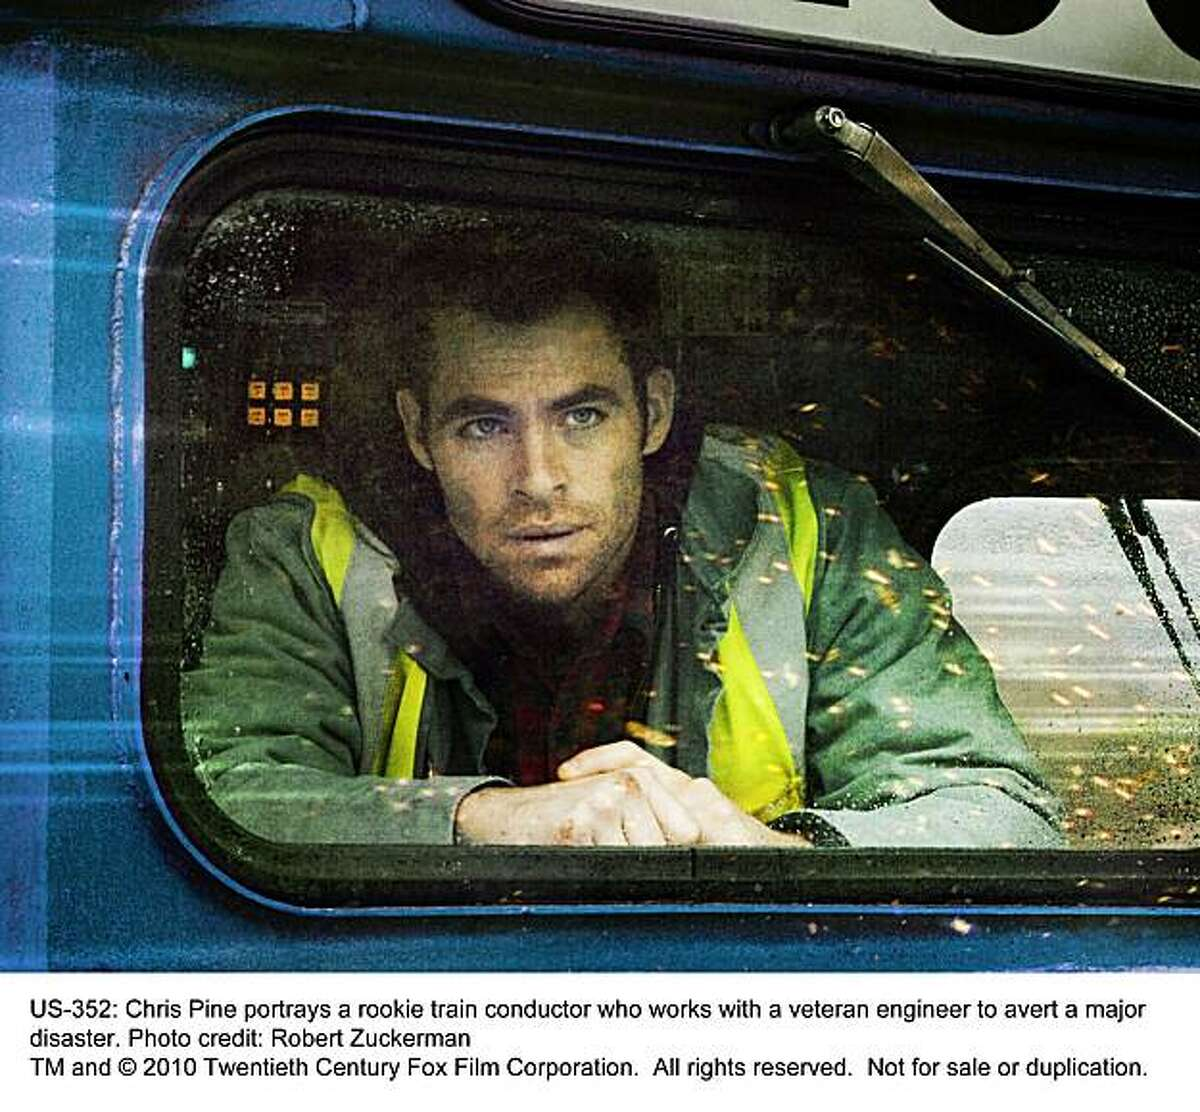 Chris Pine stars as a young train conductor who becomes an unexpected hero, in UNSTOPPABLE.